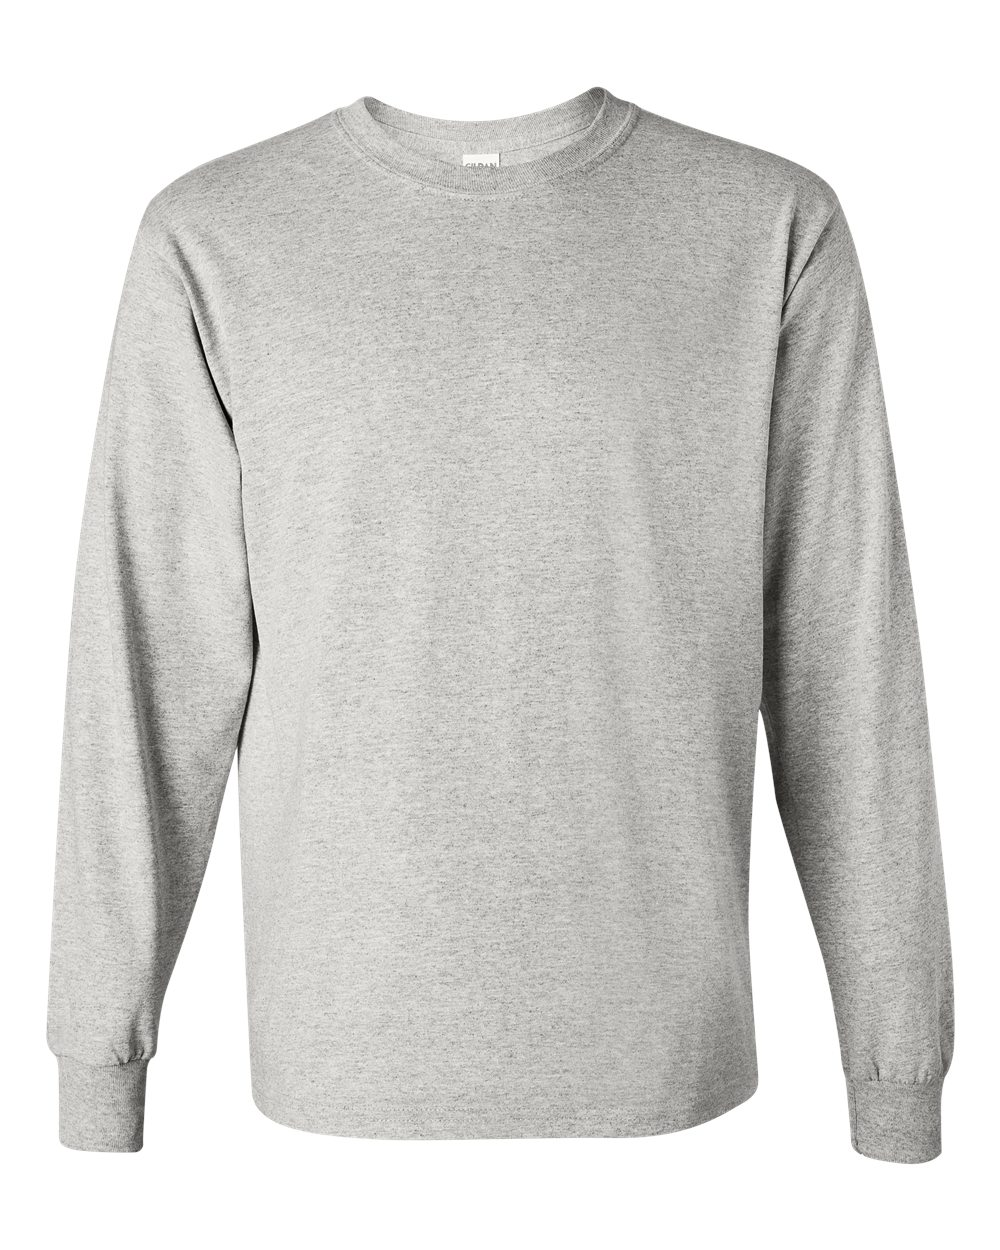 44ad6c3a Gildan 5400 - Heavy Cotton Long Sleeve T-Shirt | Needen USA